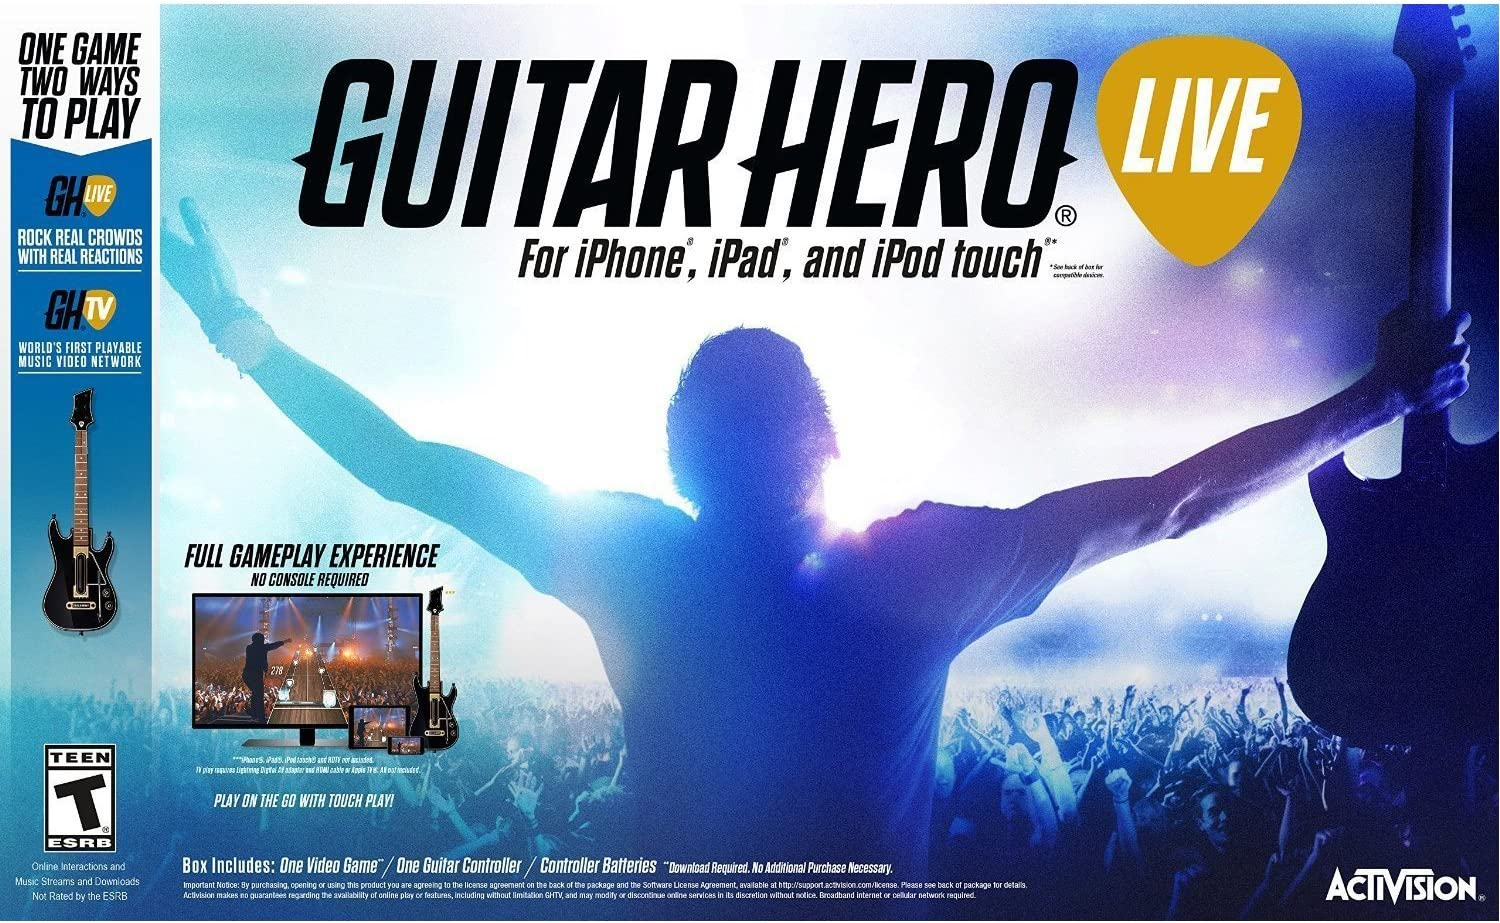 Guitar Hero Live Video Game for iPhone iPad iPod Touch vídeo Juego: Amazon.es: Electrónica